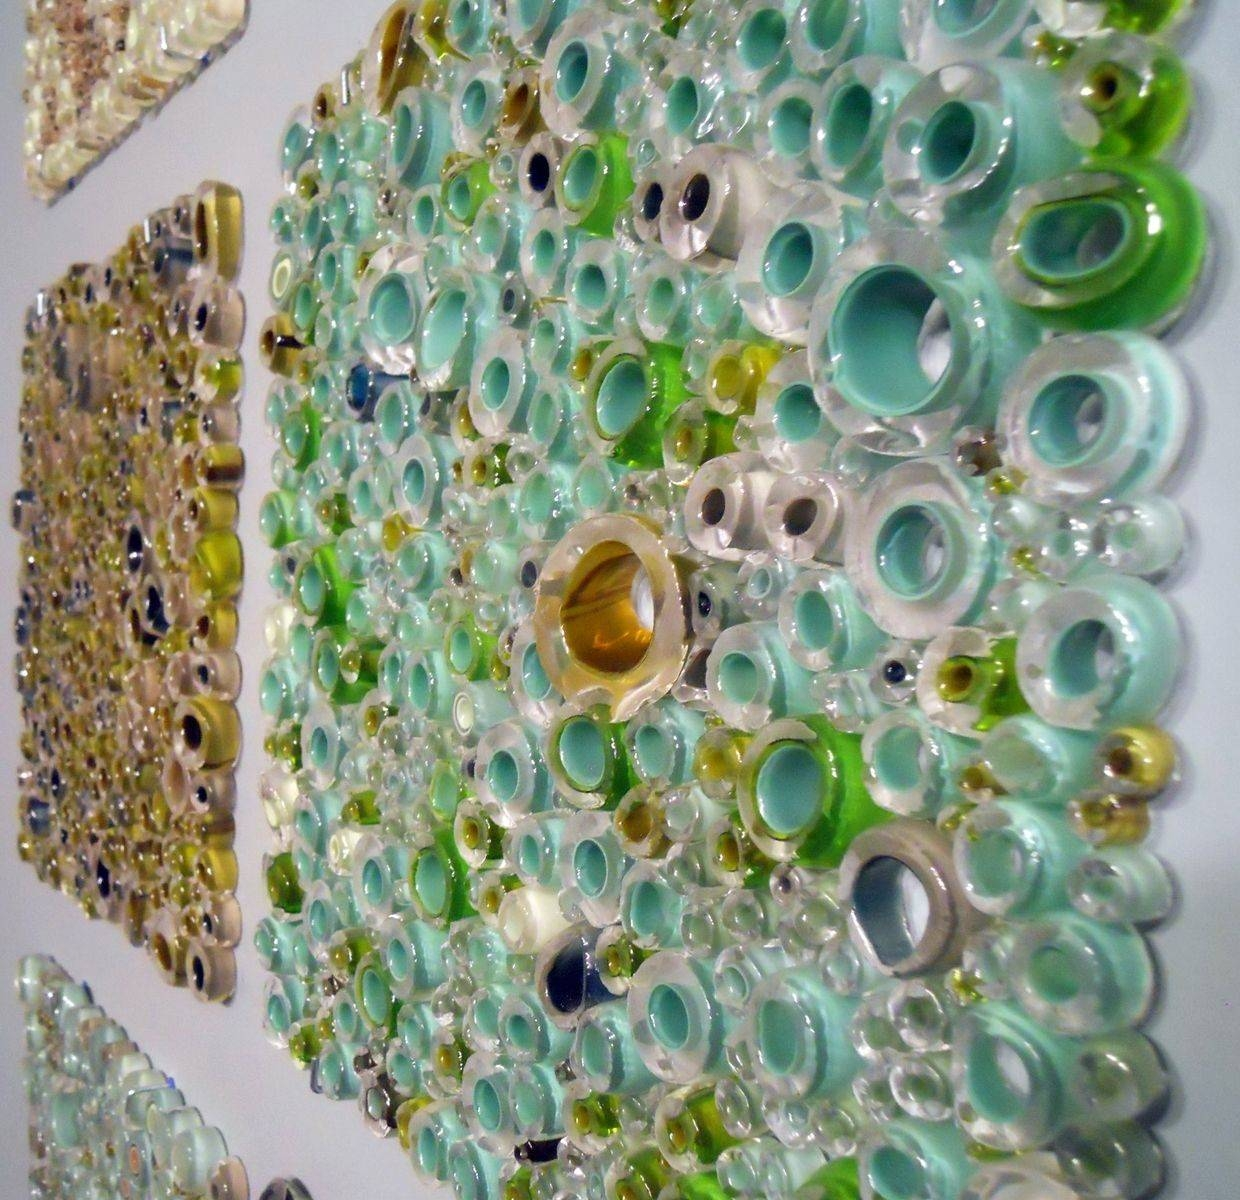 Handmade Glass Wall Panel Art Work, Fused Tubing Serieswolf Throughout Most Current Glass Wall Art Panels (View 13 of 20)